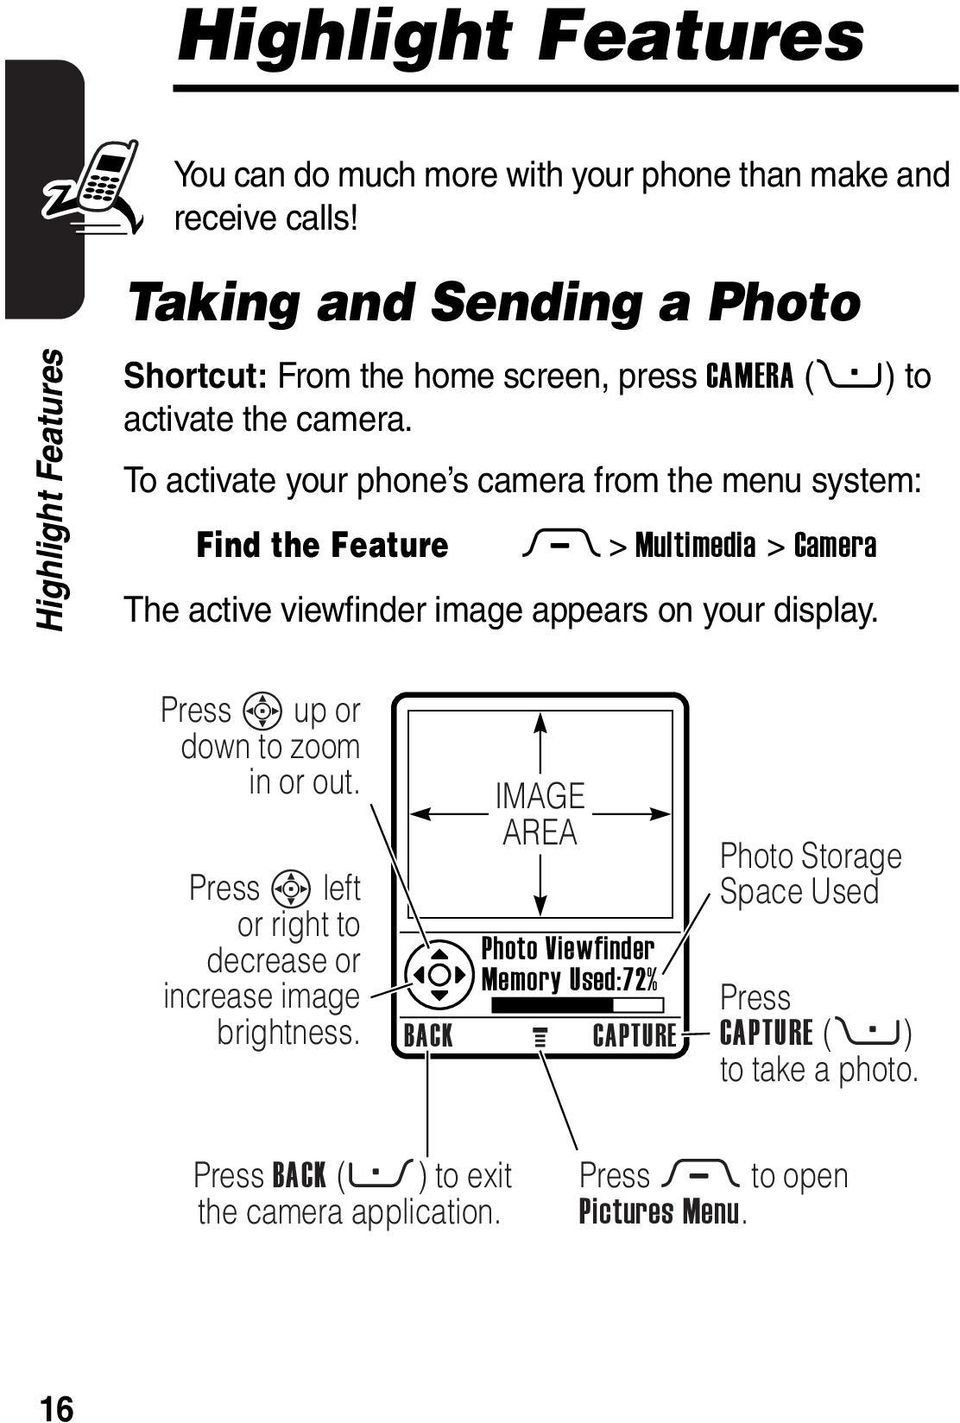 To activate your phone s camera from the menu system: Find the Feature M > Multimedia > Camera The active viewfinder image appears on your display.